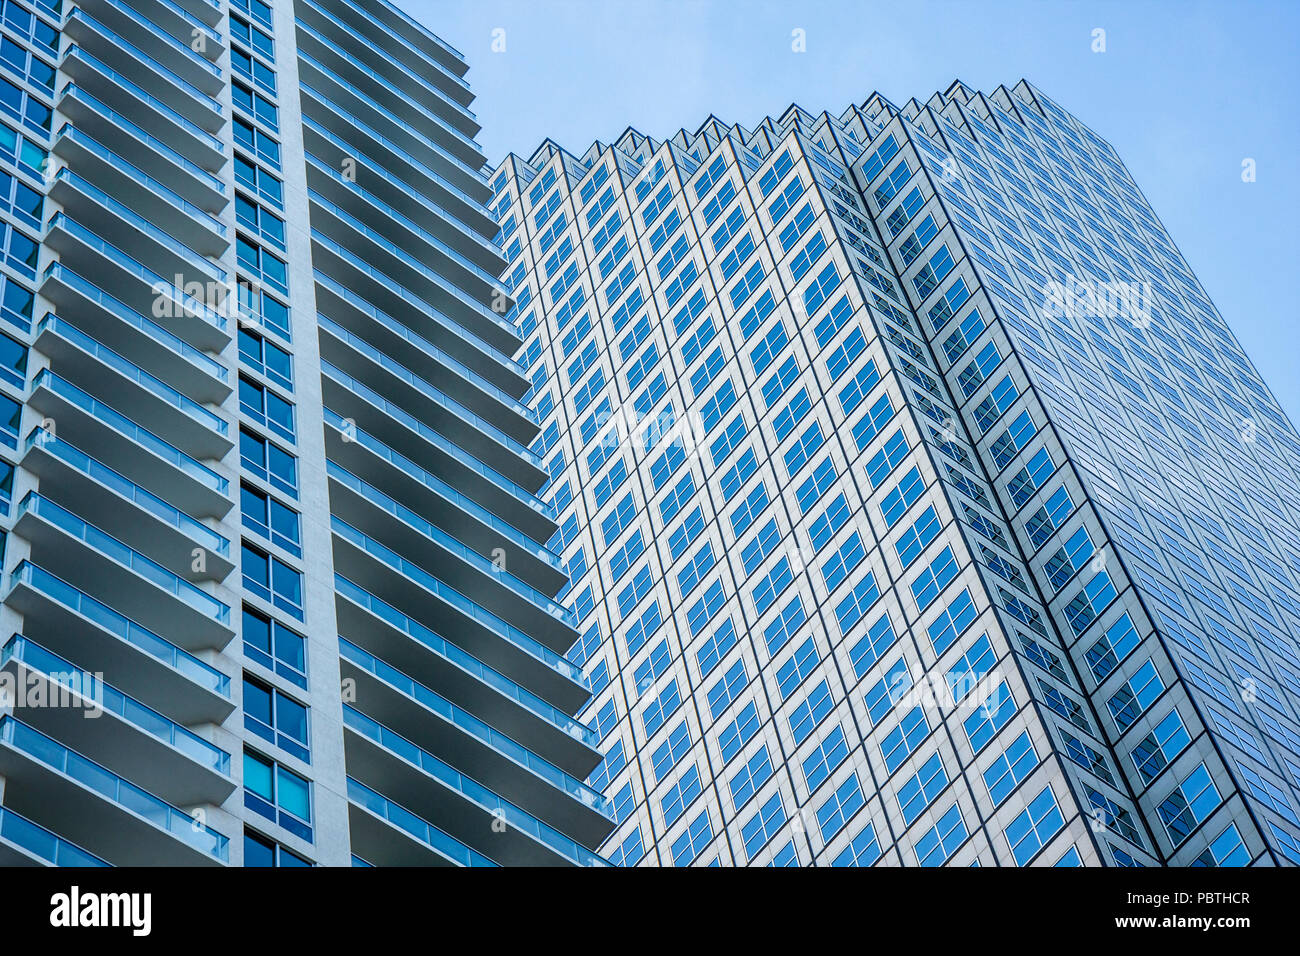 Miami Florida downtown Southeast Financial Center Architect Skidmore Owings and Merrill skyscraper tower office building high ris - Stock Image